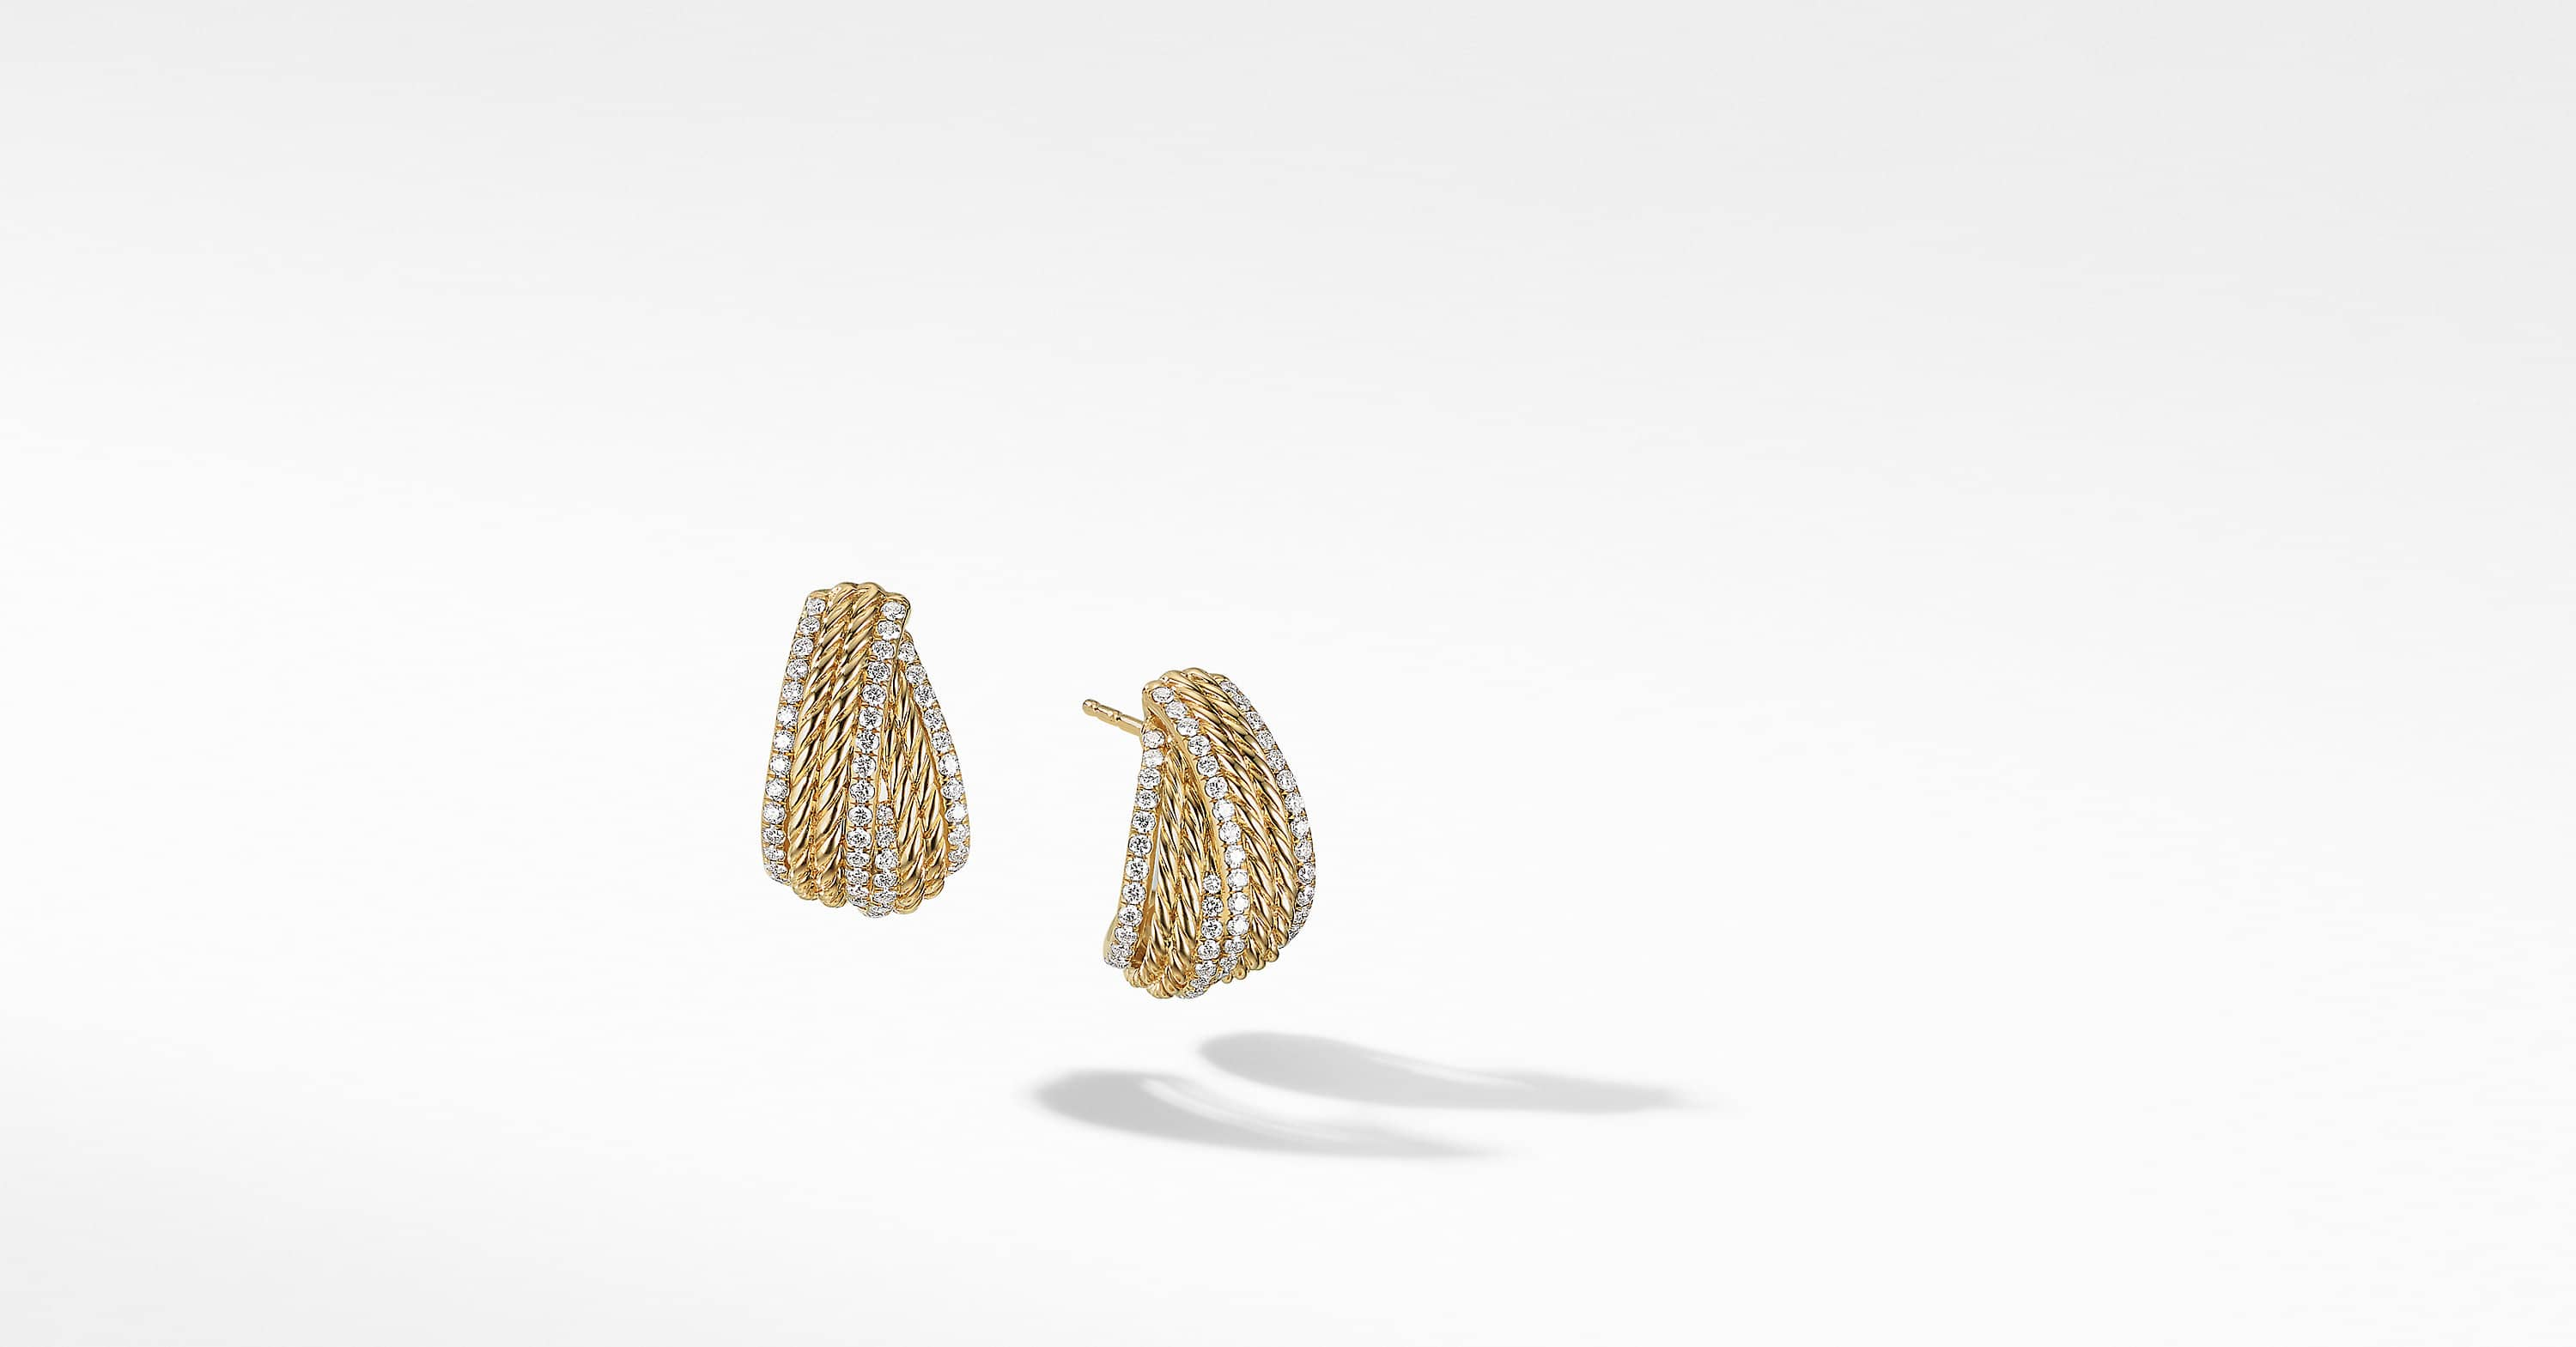 DY Origami Shrimp Earrings in 18K Yellow Gold with Pavé, 11mm